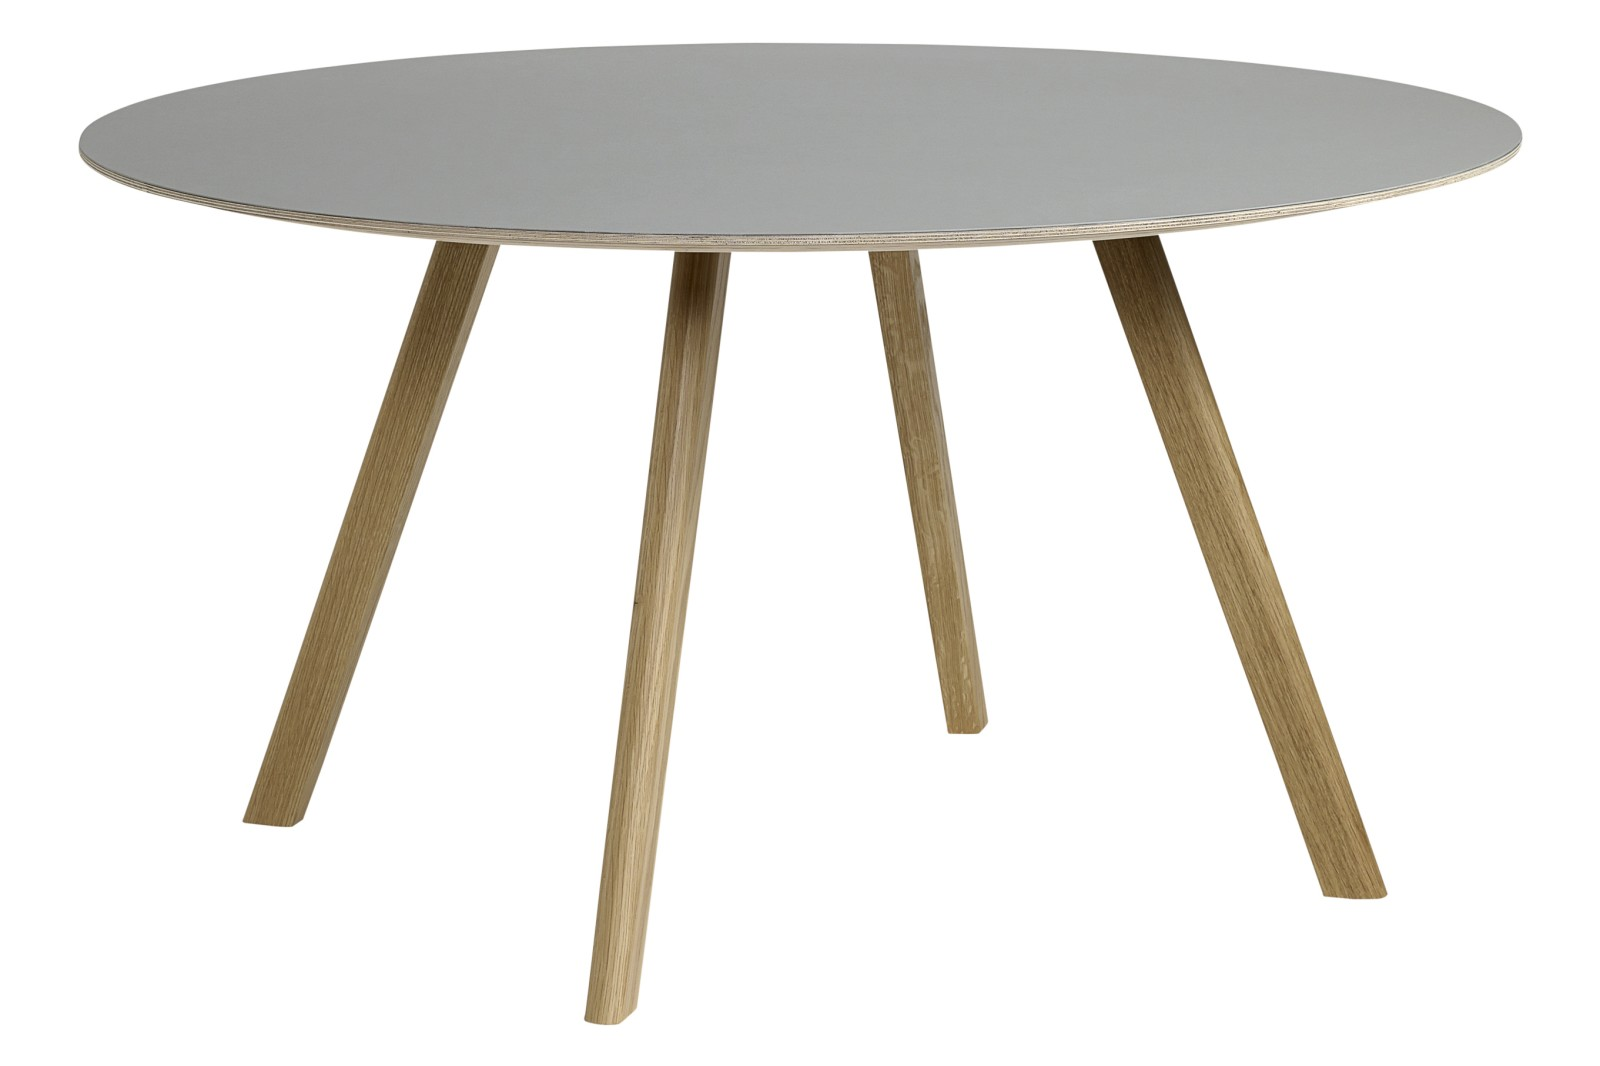 Copenhague Linoleum Top Round Dining Table CPH25 Clear Lacquered Oak Base, Off White Top